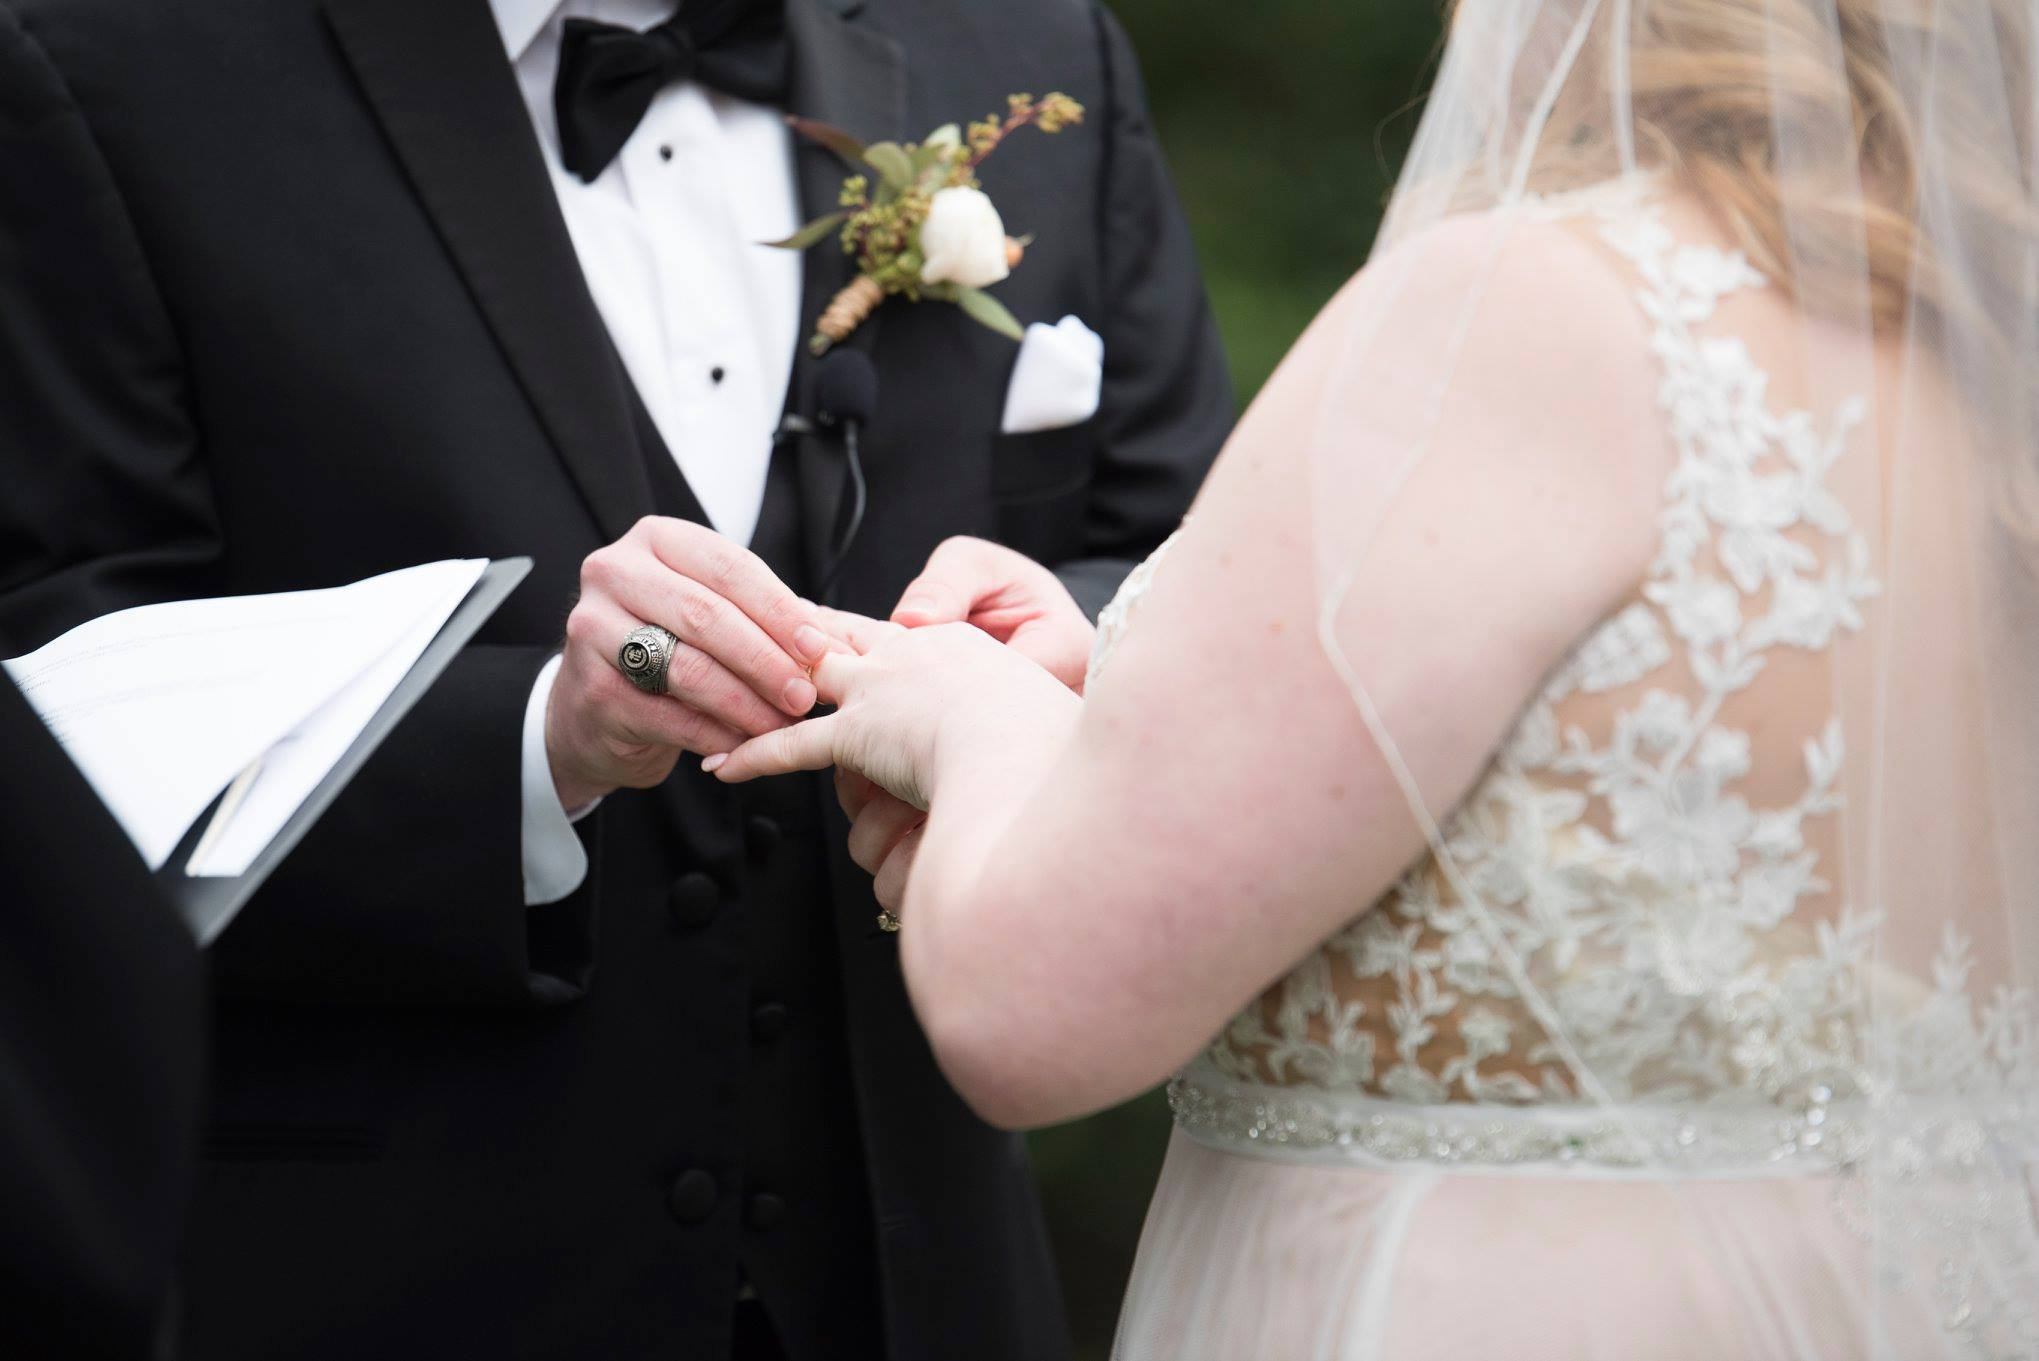 Bride and groom exchanging rings at a ceremony at Separk Mansion